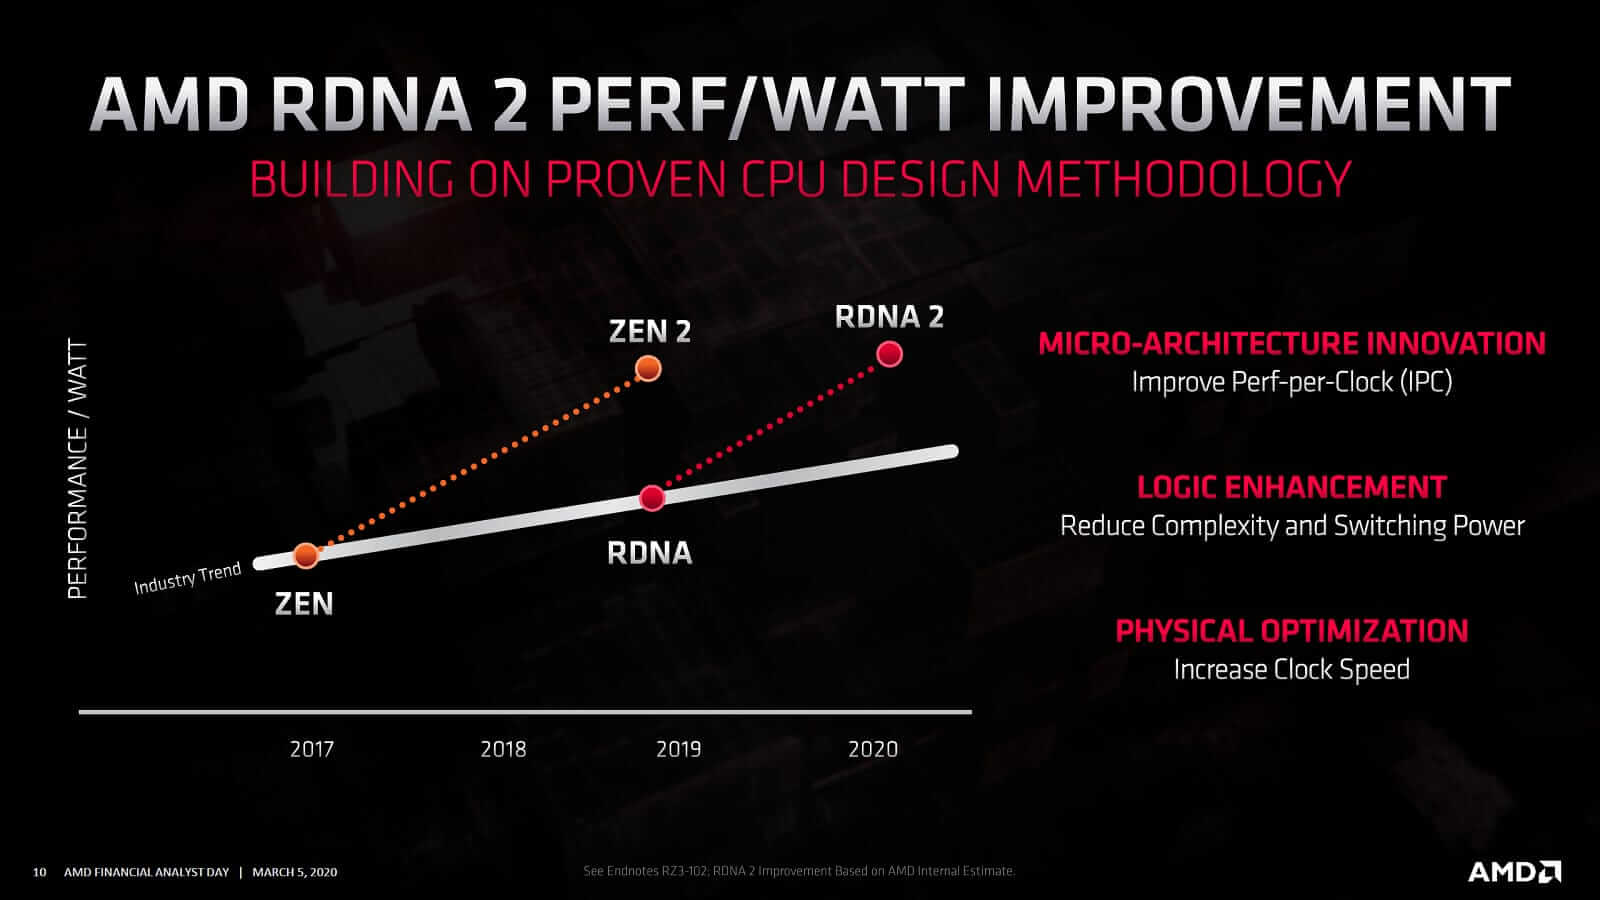 RDNA2 Performace Per Watt Improvement